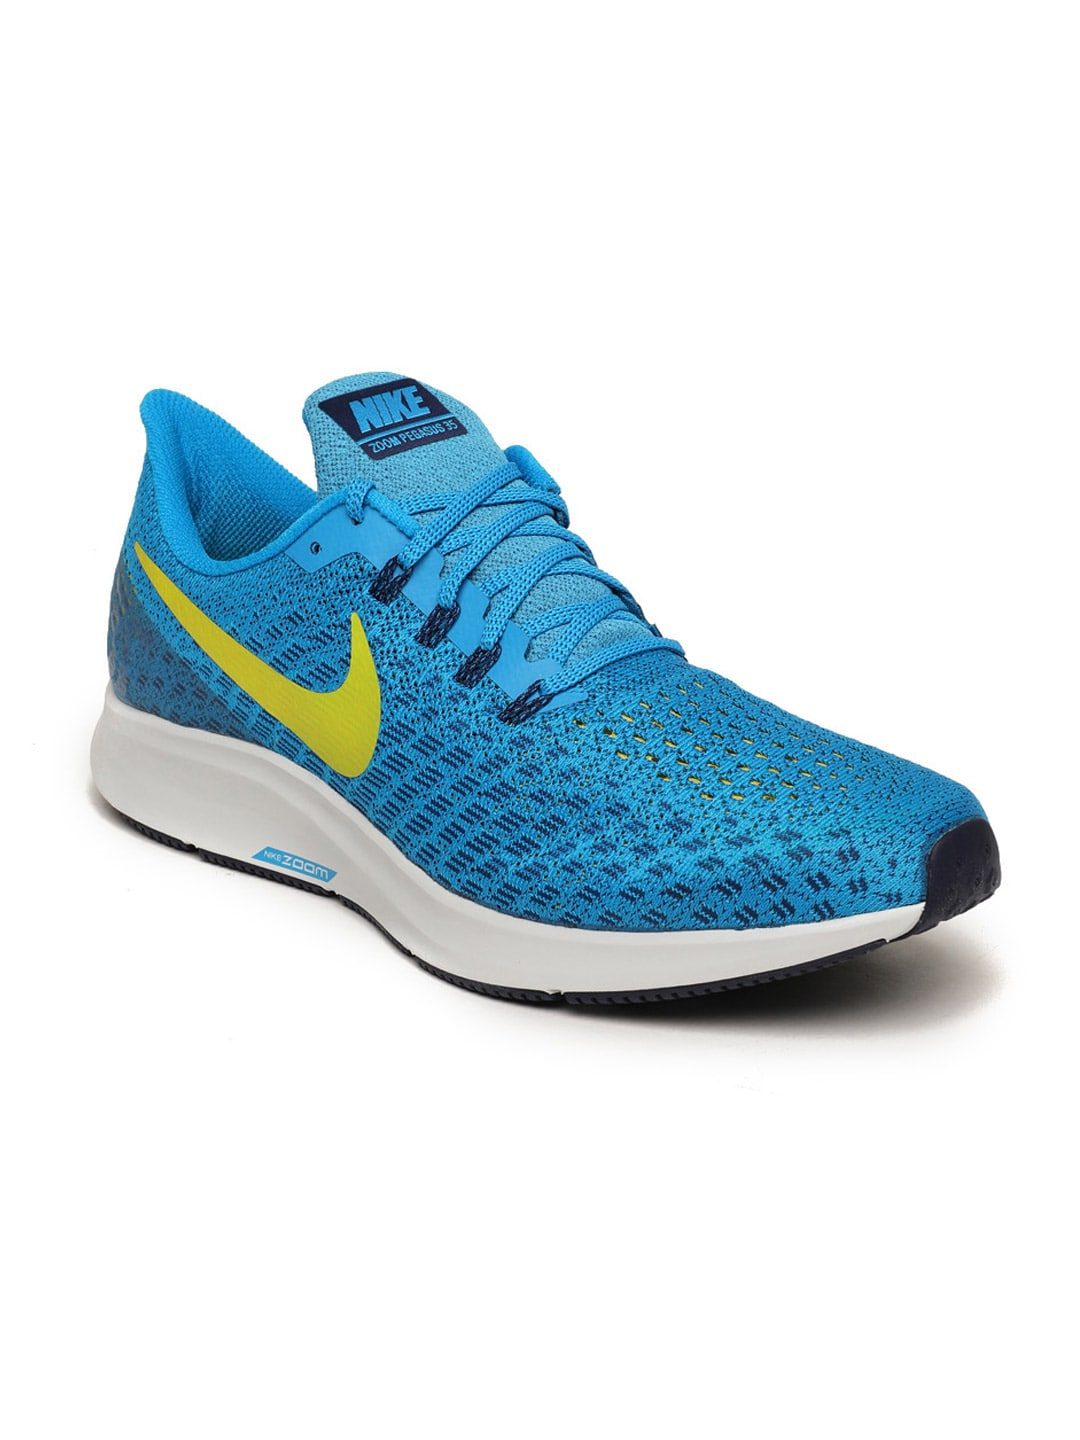 b856afdf5f77 Nike Shoes - Buy Nike Shoes for Men